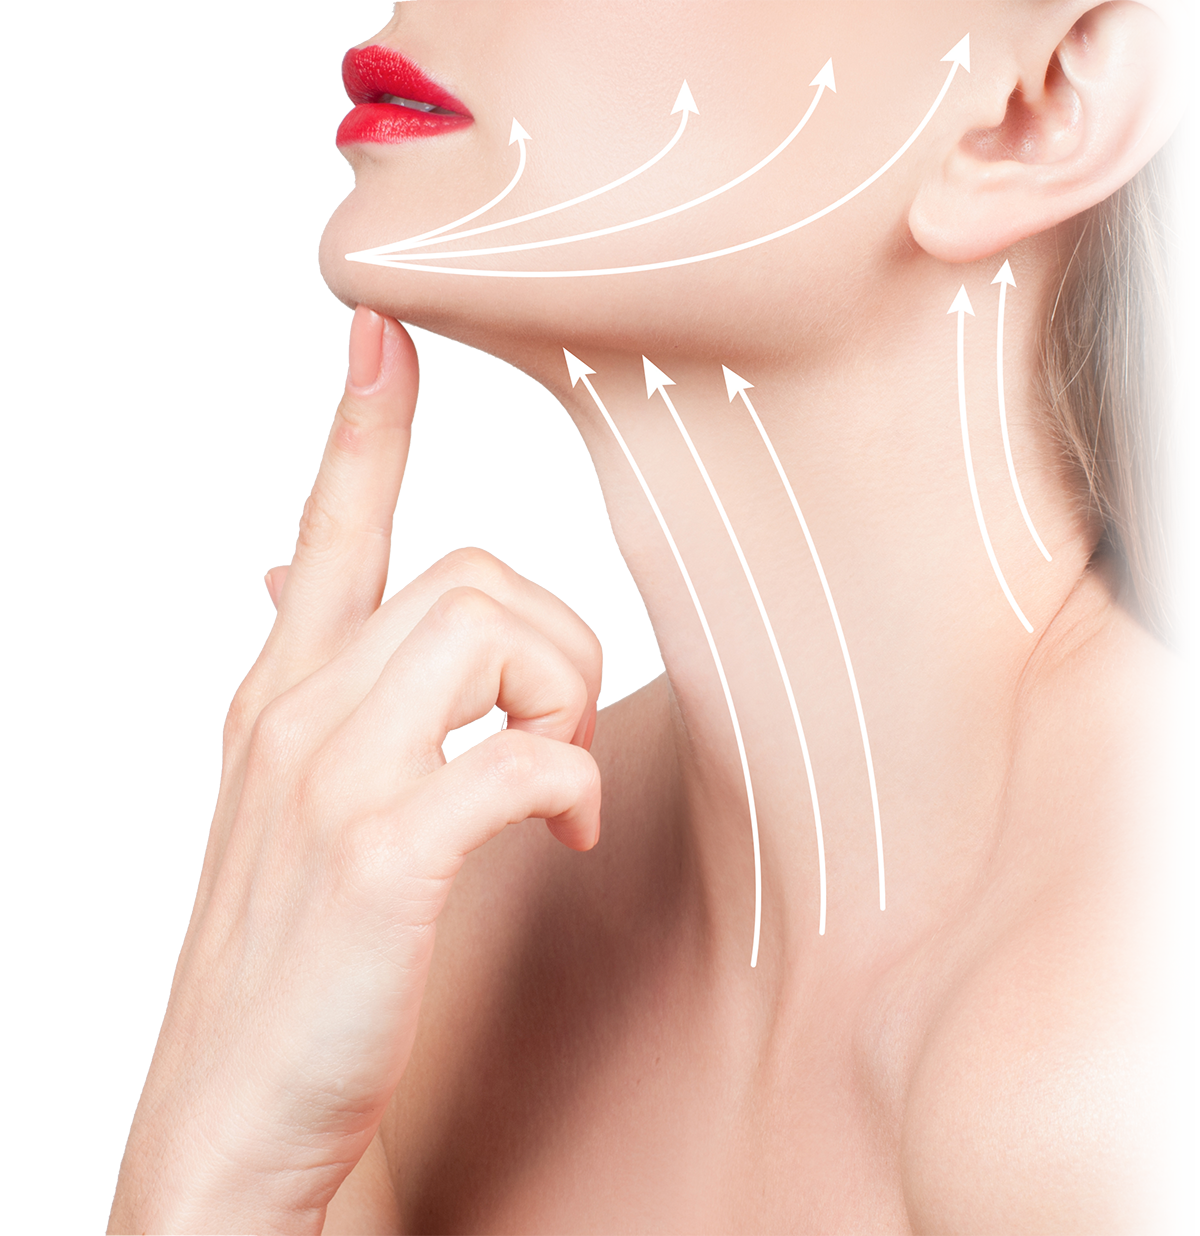 Woman pointing to chin, neck close-up with lines indicating firming